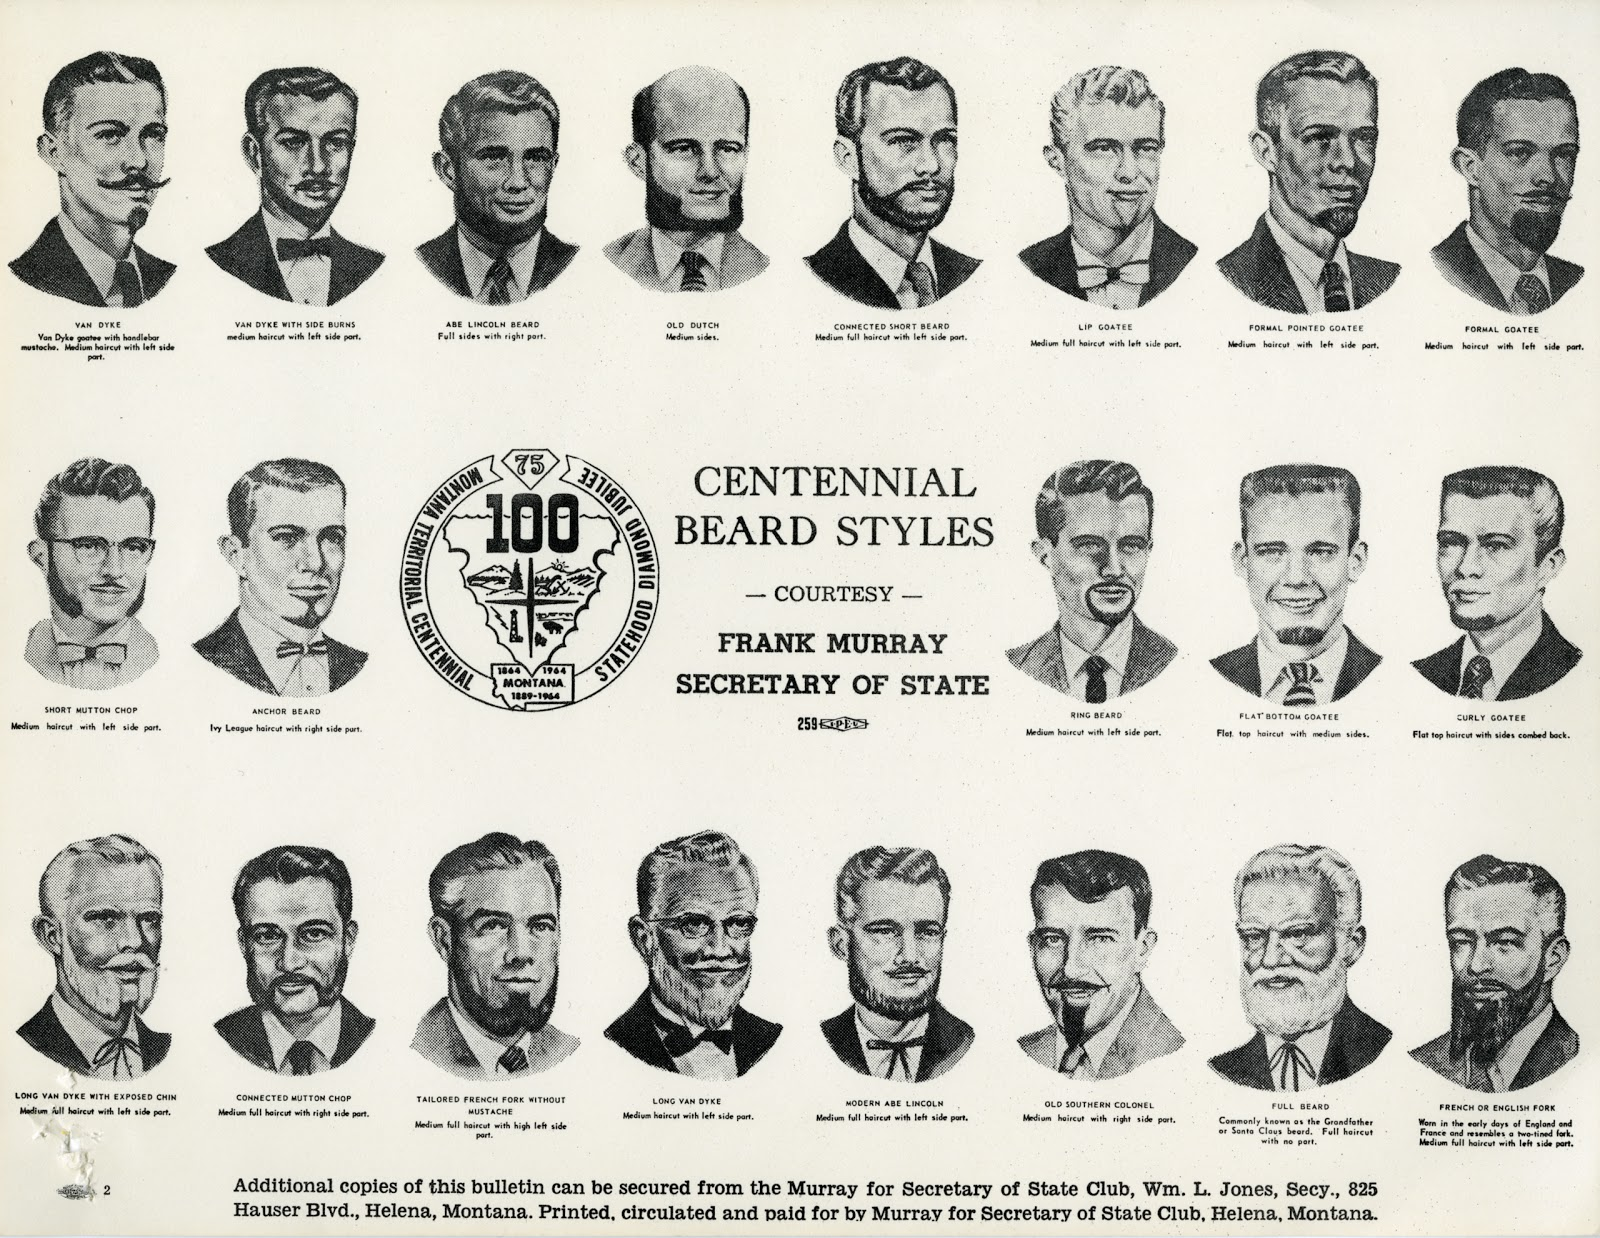 Bulletin: Centennial Beard Styles Courtesy of Frank Murray Secretary of State, Montana Territorial Centennial Statehood Diamond Jubilee